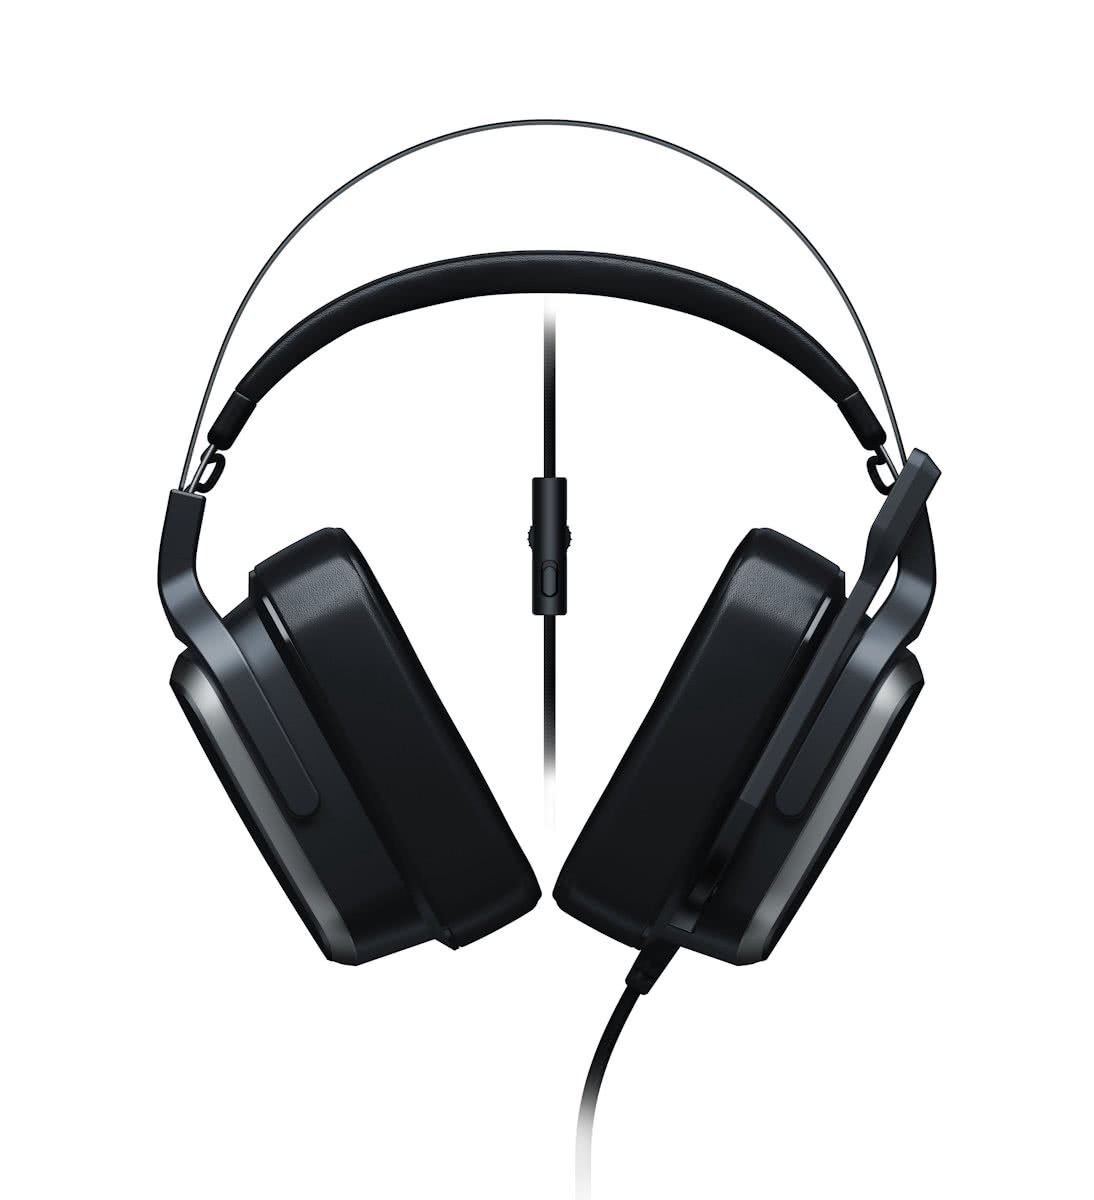 Tiamat 2.2 V2 - Gaming Headset - PC + Mac + Xbox One + PS4 + Mobile